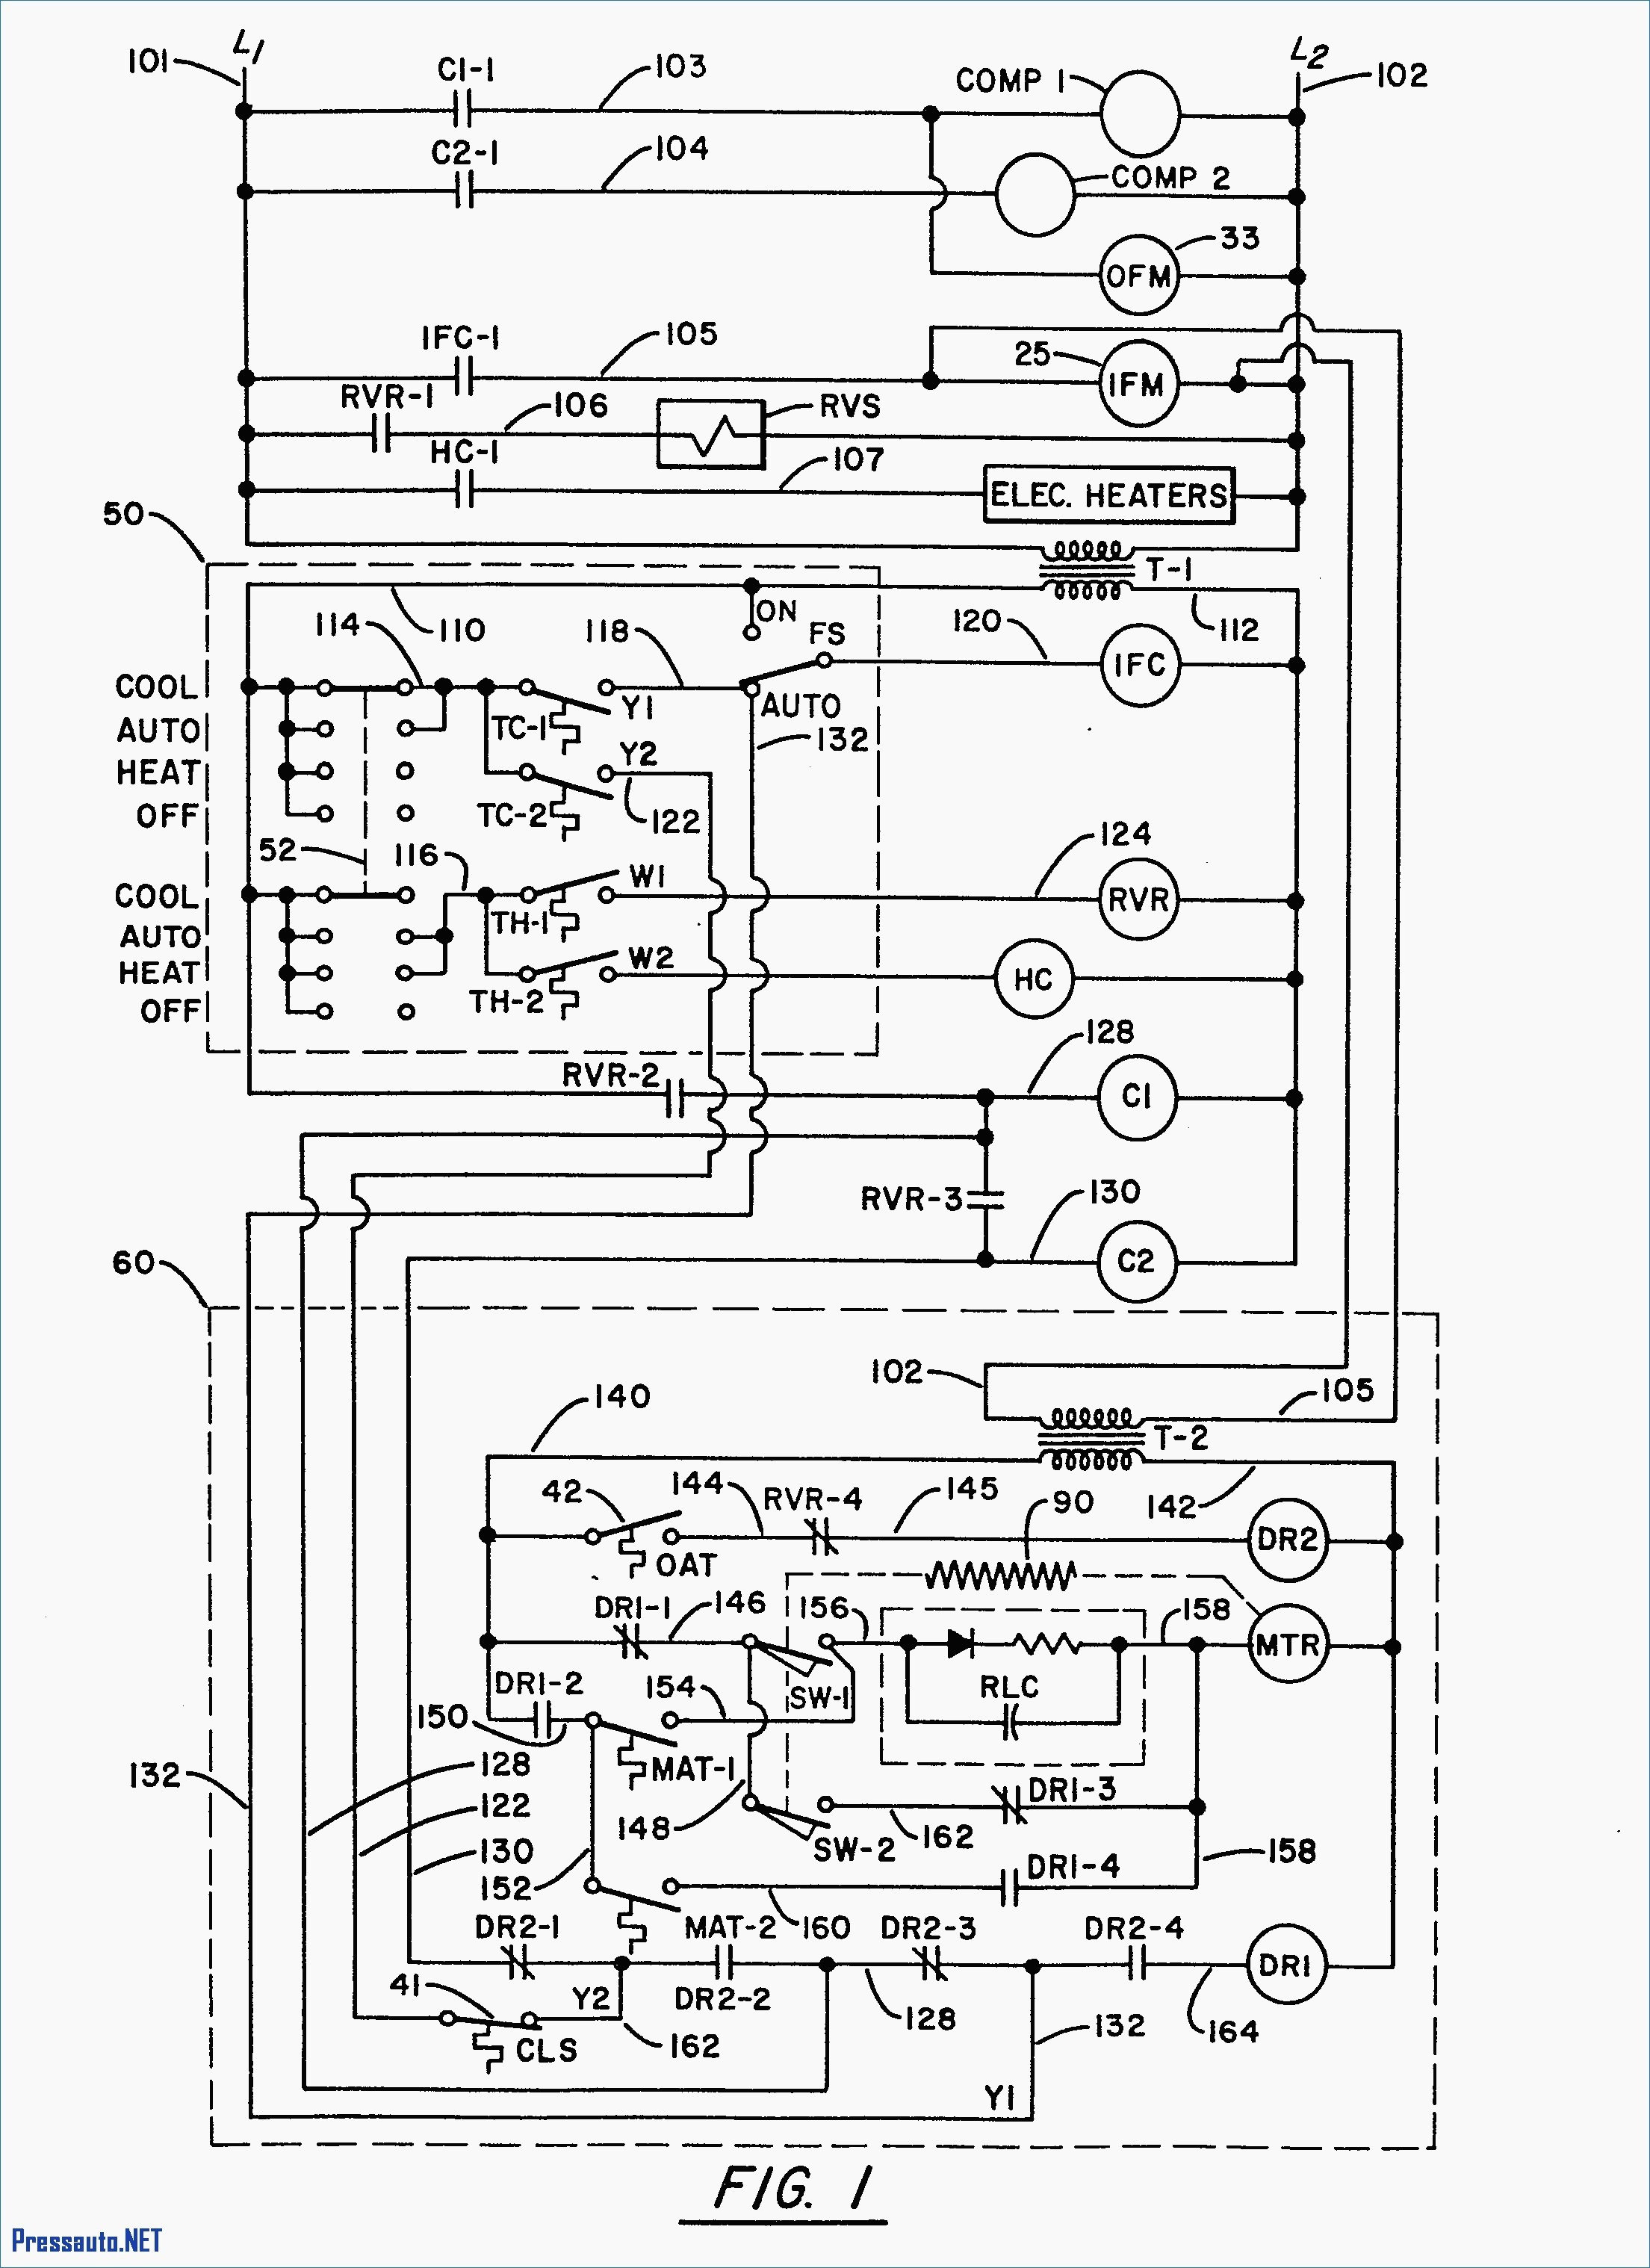 trane rooftop unit wiring diagram Download-Trane Hvac Wiring Diagram New Trane Rooftop Unit Wiring Diagram 10-n